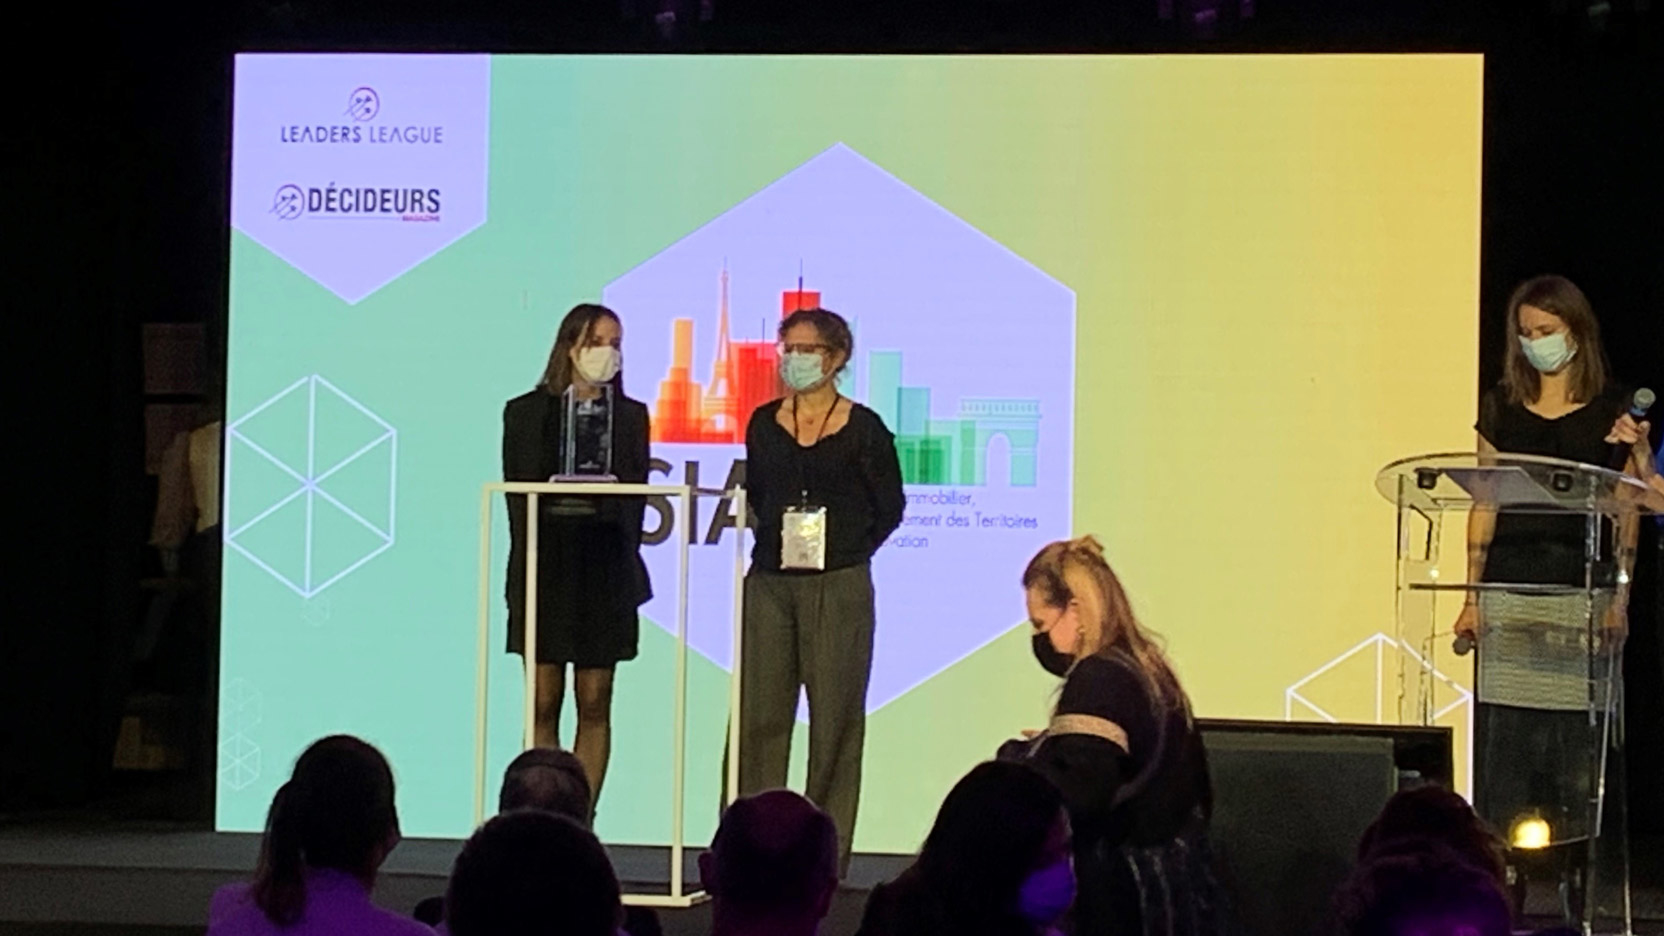 La Cité Universelle receives the award for most innovative operation at SIATI 2020!